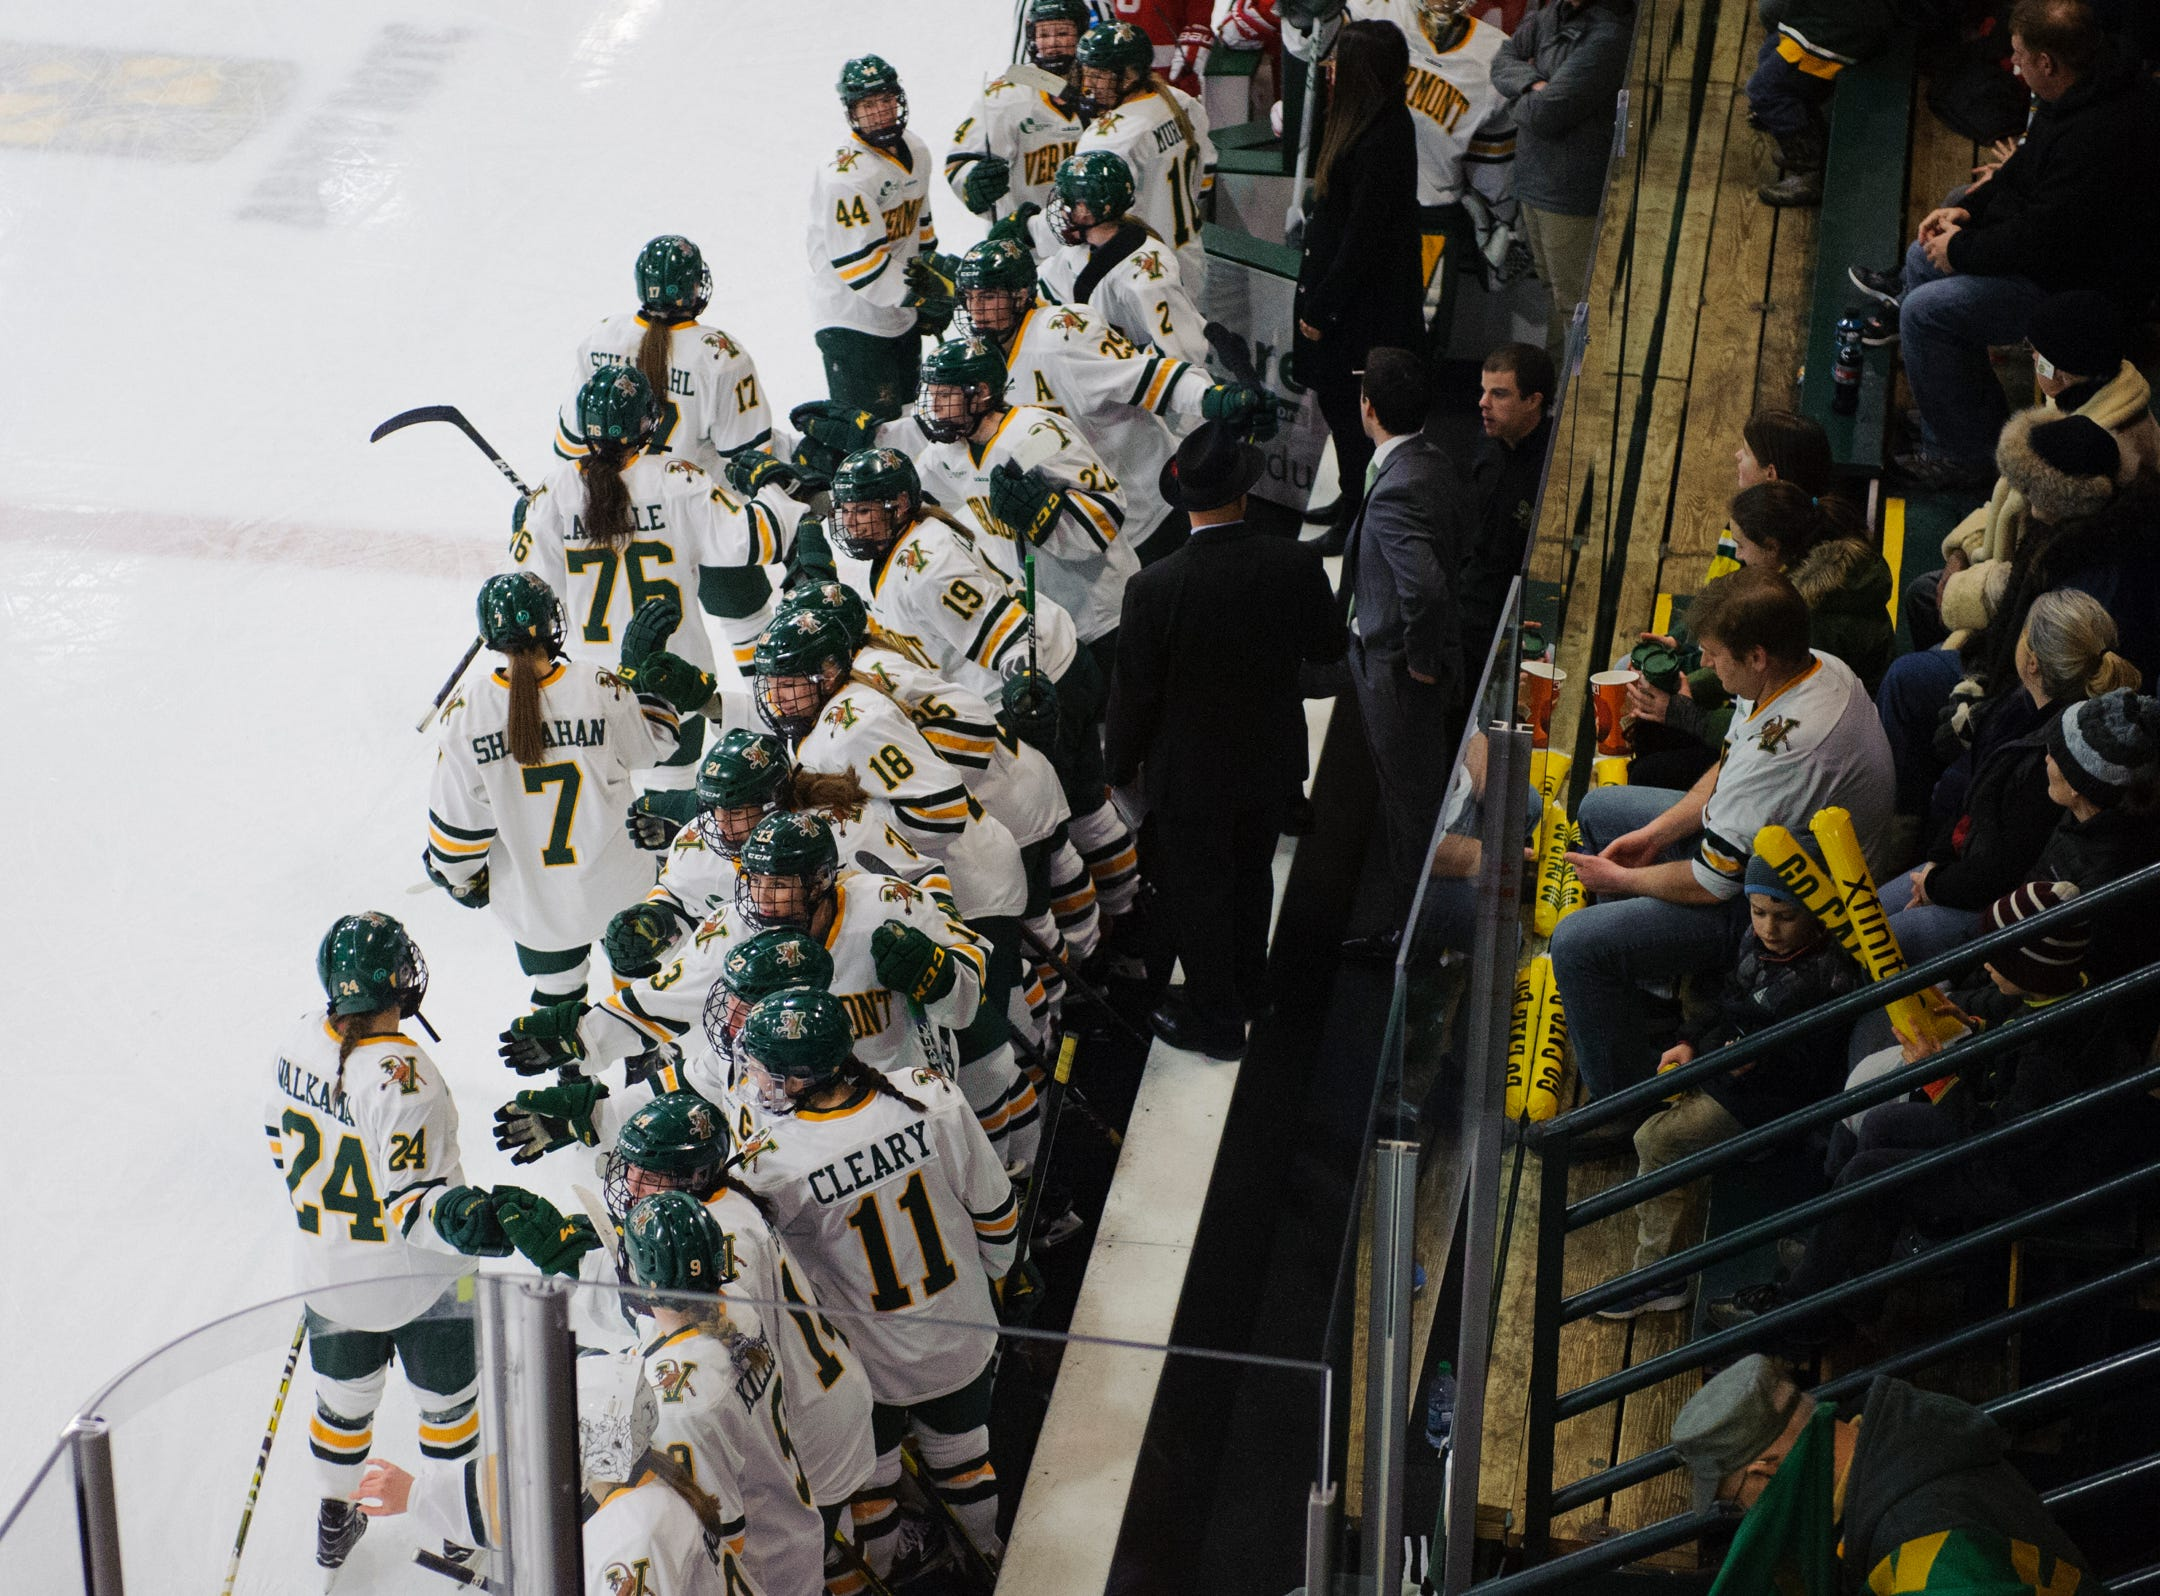 Vermont celebrates a goal during the women's hockey game between the Boston Terriers and the Vermont Catamounts at Gutterson Field House on Friday night February 1, 2019 in Burlington, Vermont.